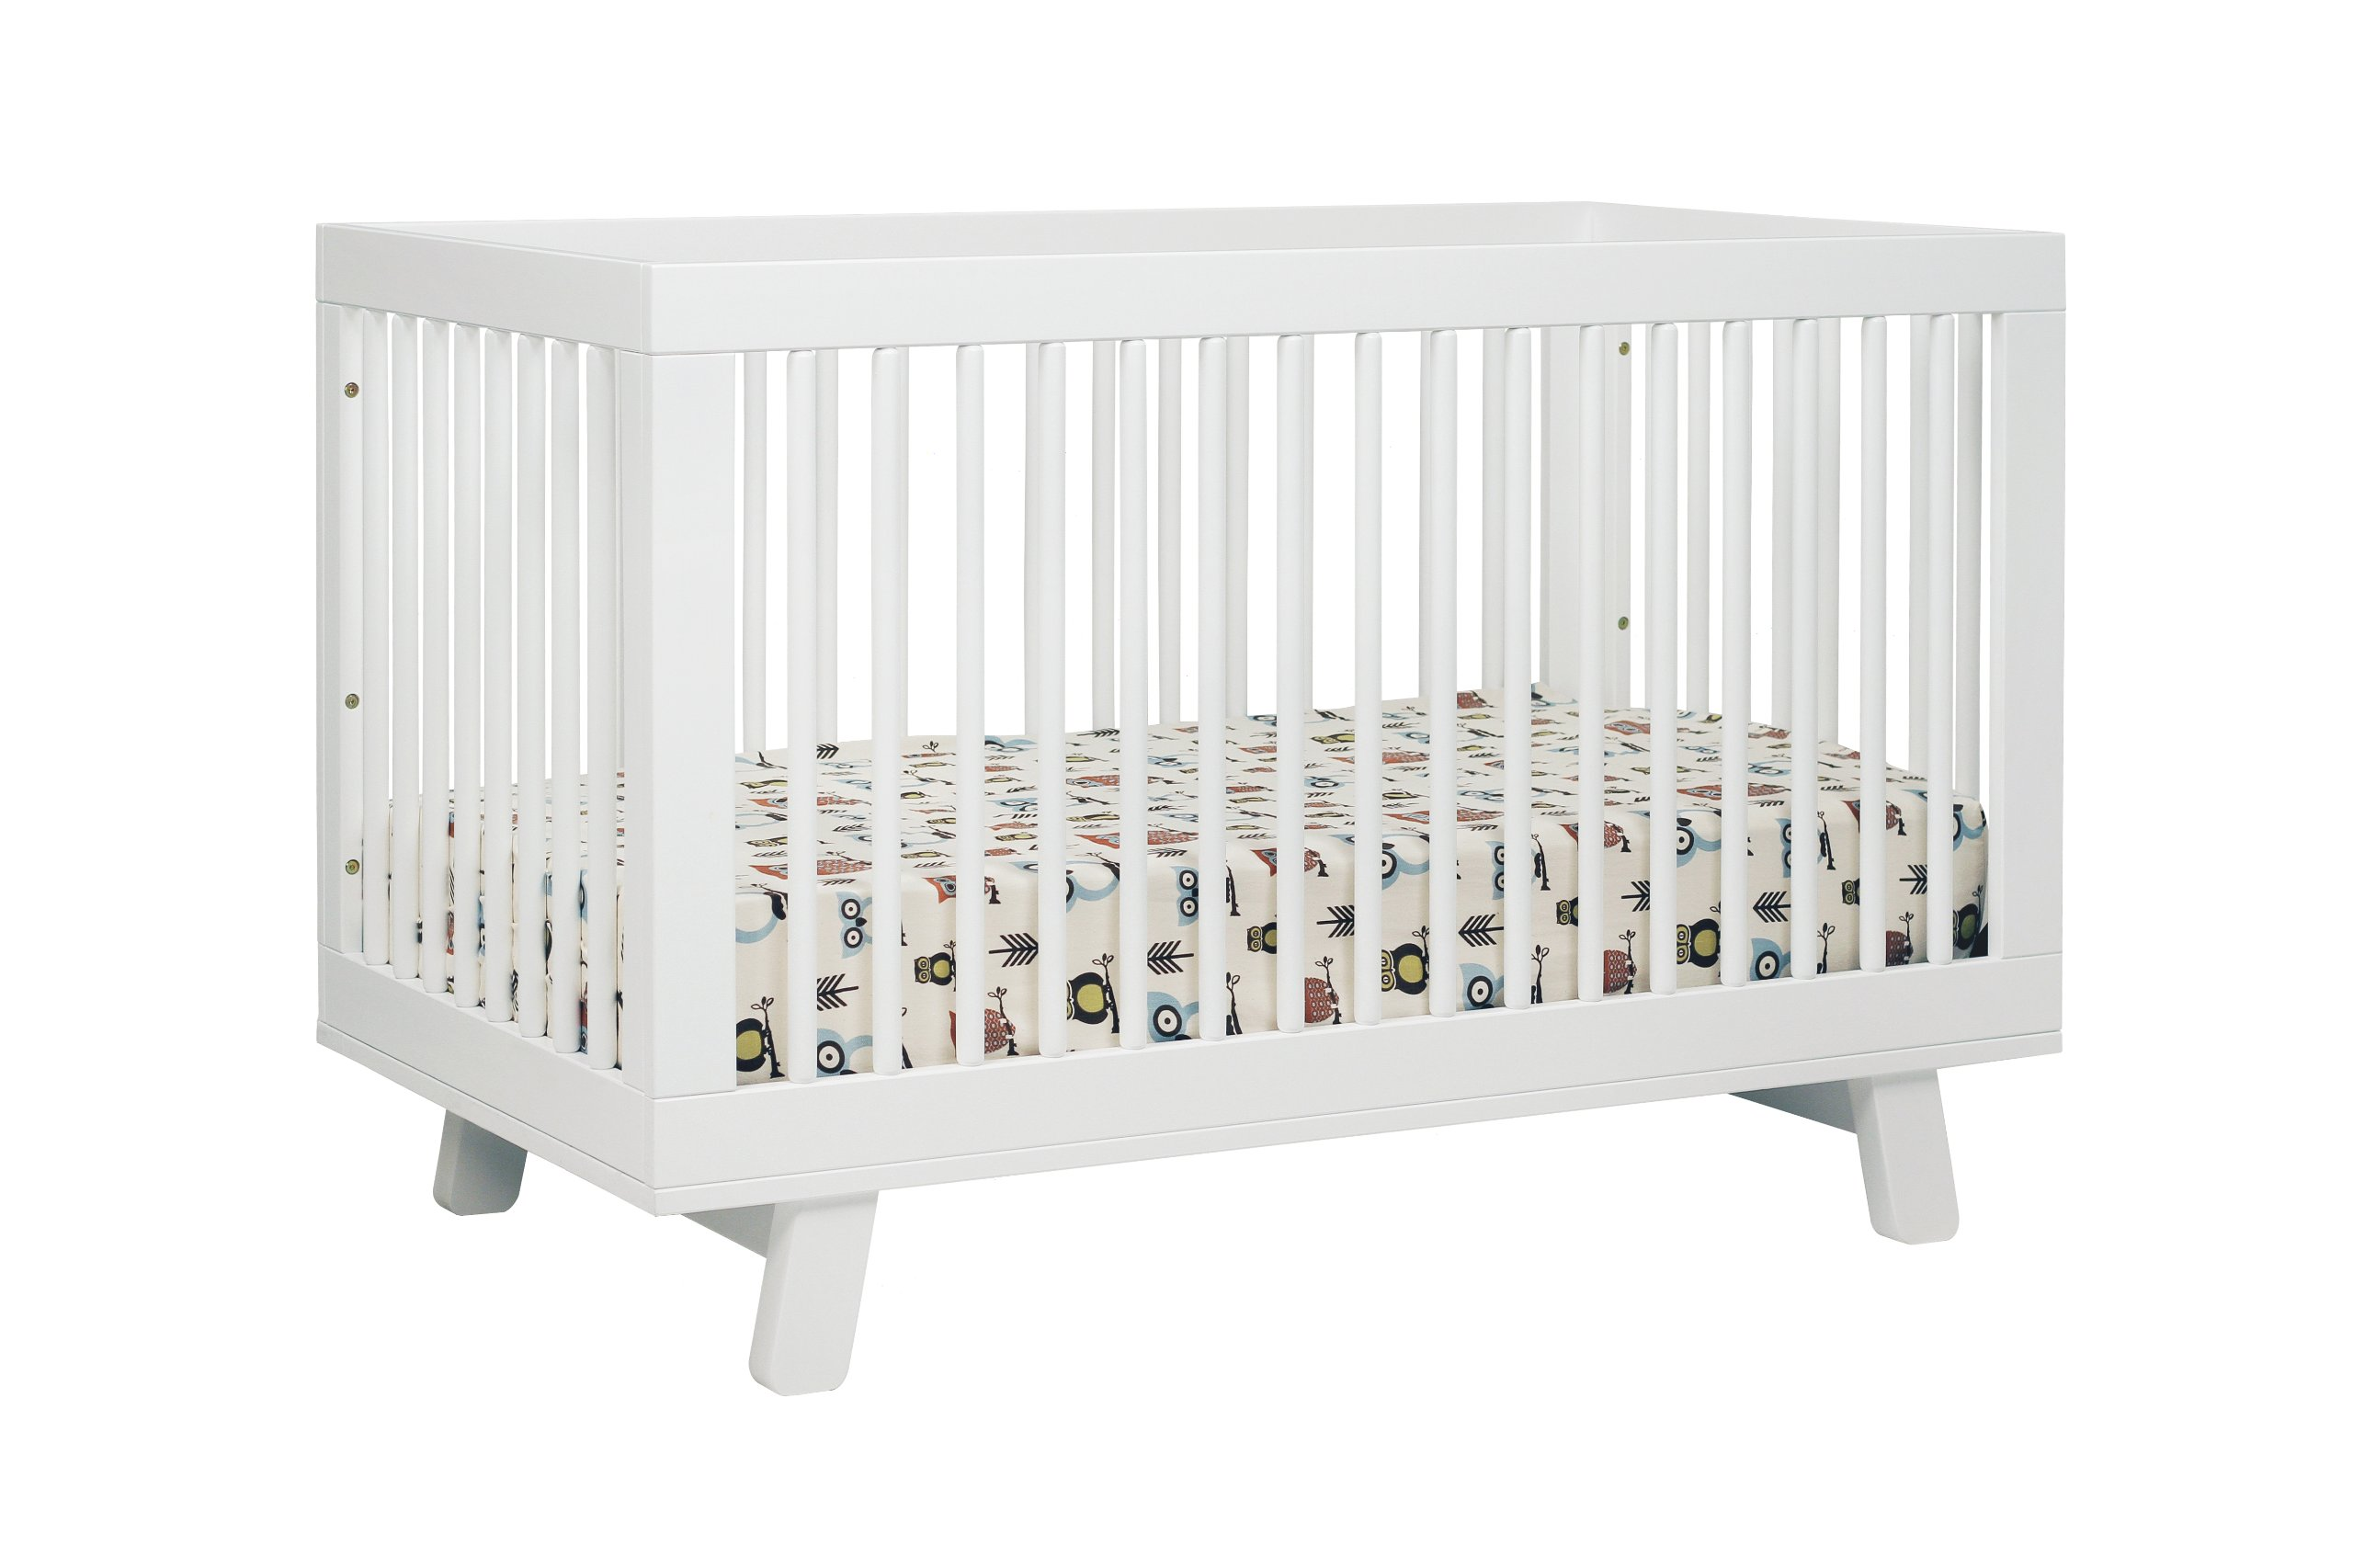 Babyletto Hudson 3-in-1 Convertible Crib with Toddler Bed Conversion Kit, White by babyletto (Image #2)